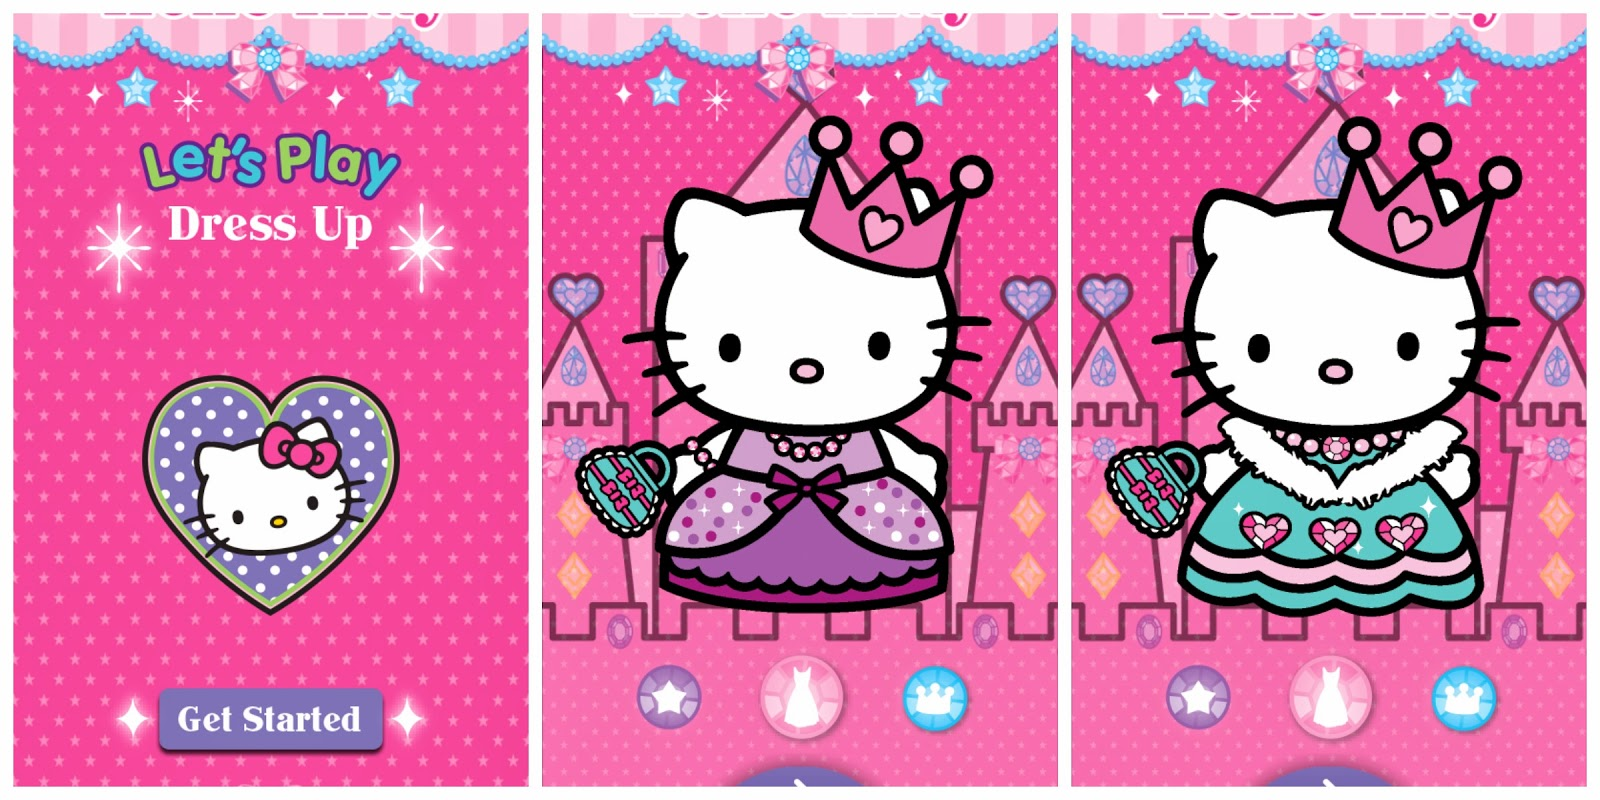 4c06b22dc 504 Main By Holly Lefevre Playing Dress Up With Hello Kitty And The